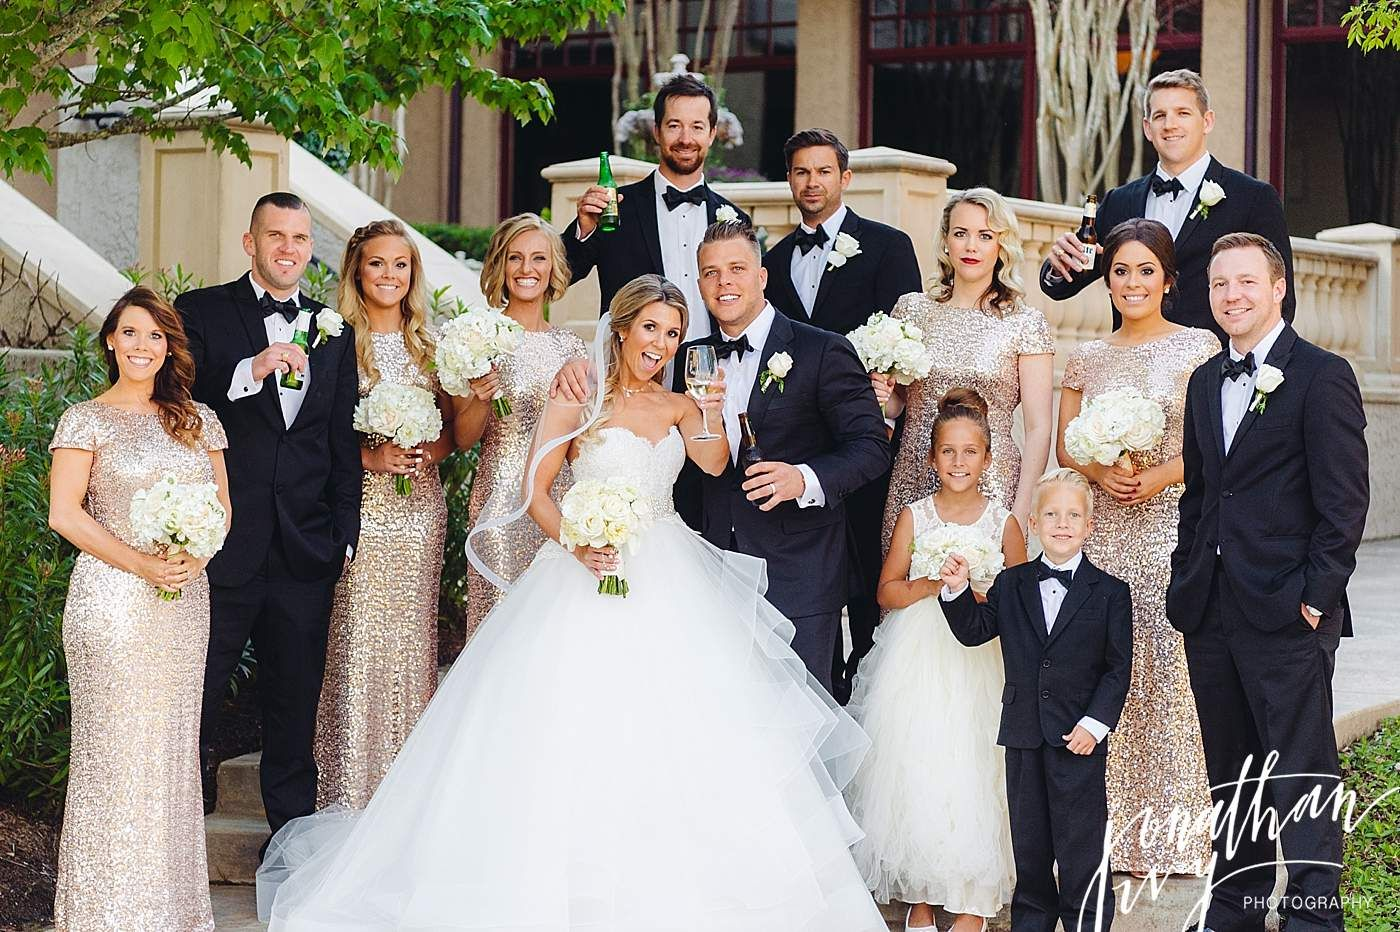 Ultra Glam Wedding Party With Gold Sequin Bridesmaid Dresses And Groomsmen In Tuxedos